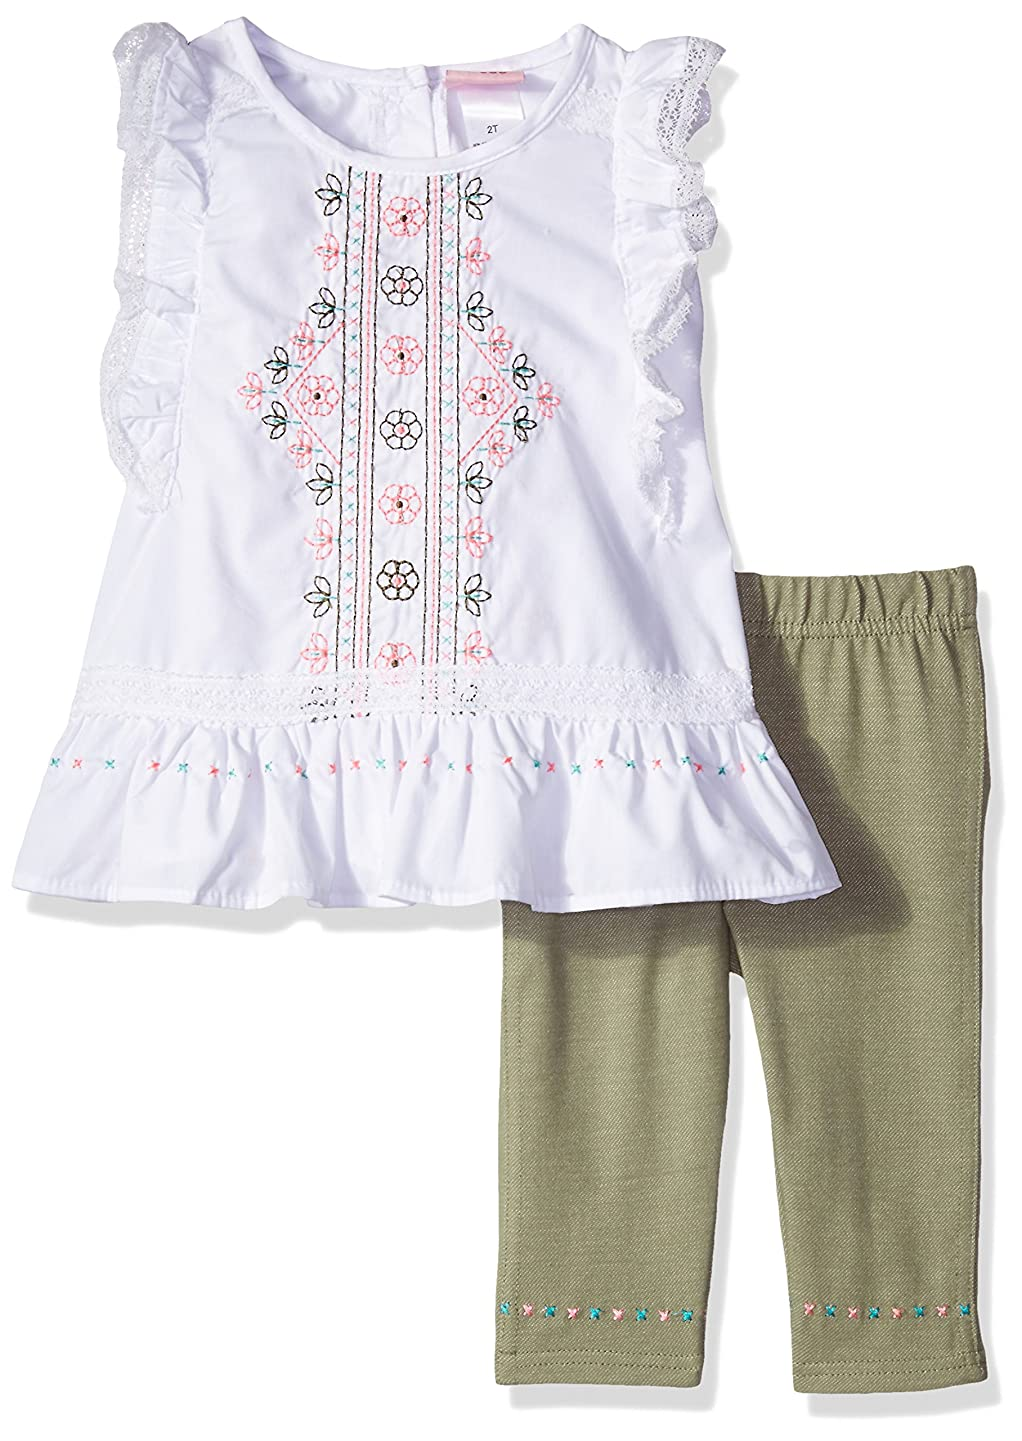 Nannette Girls' 2 Piece Set with Embroidered Top with Crotchet Trim and Solid Legging